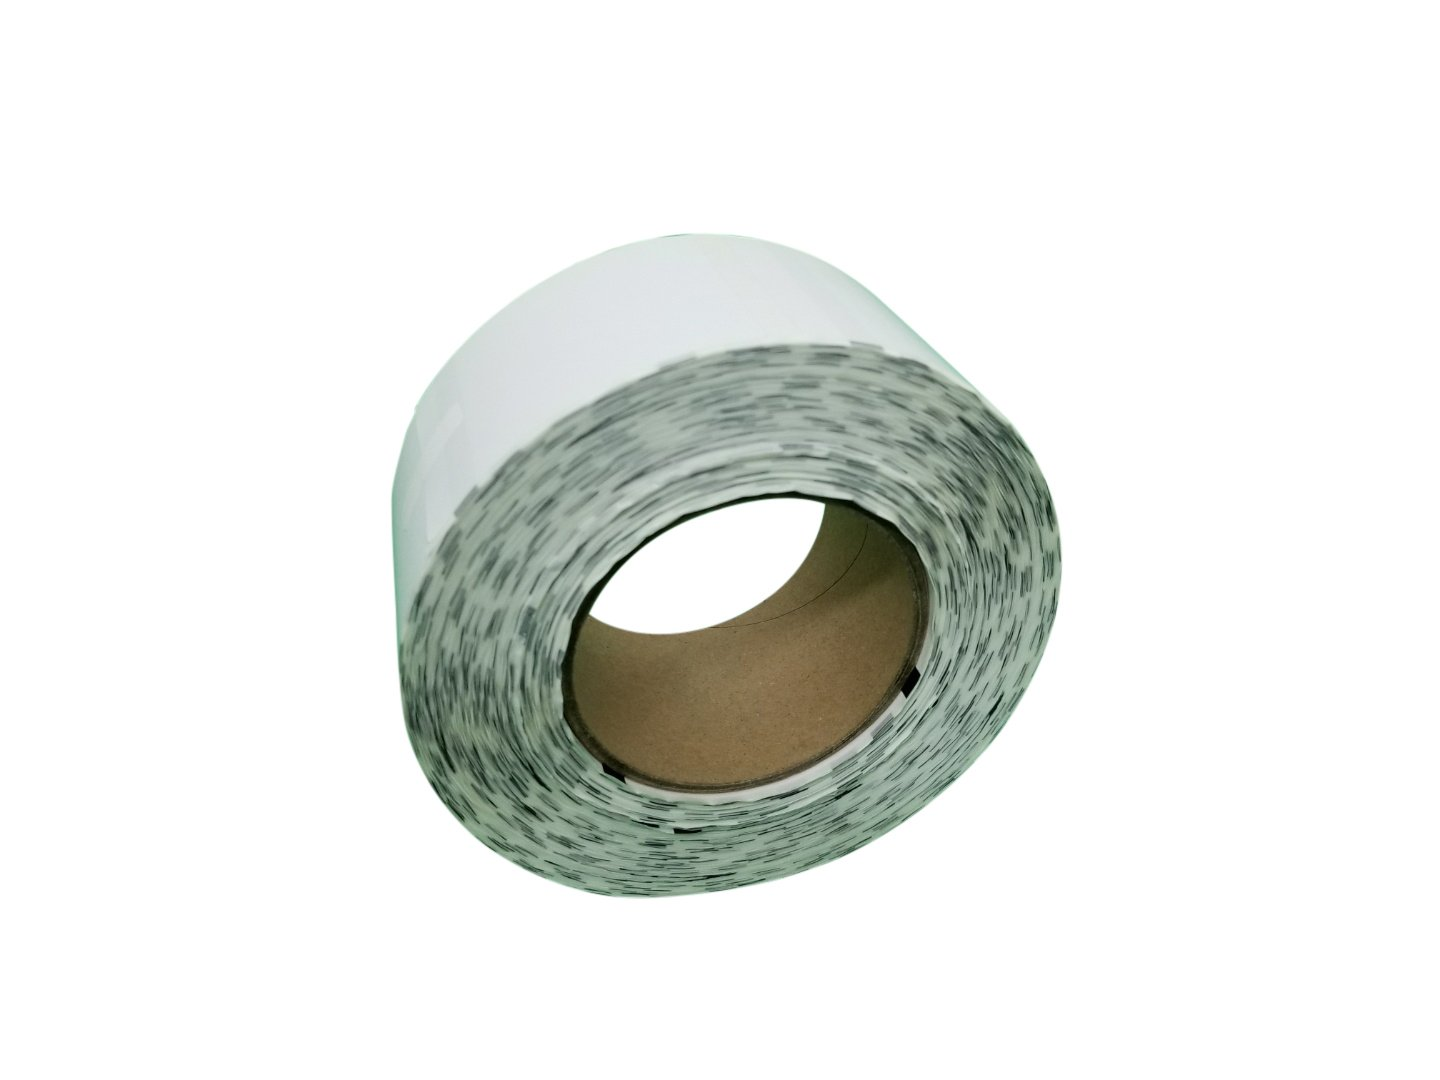 HOBART 3'' Blank, 2.25'' x 3''(58mm x 76mm), 7mm GAP, Eye mark, 3'' core, 1,000 Per Roll, 16 Rolls/Box